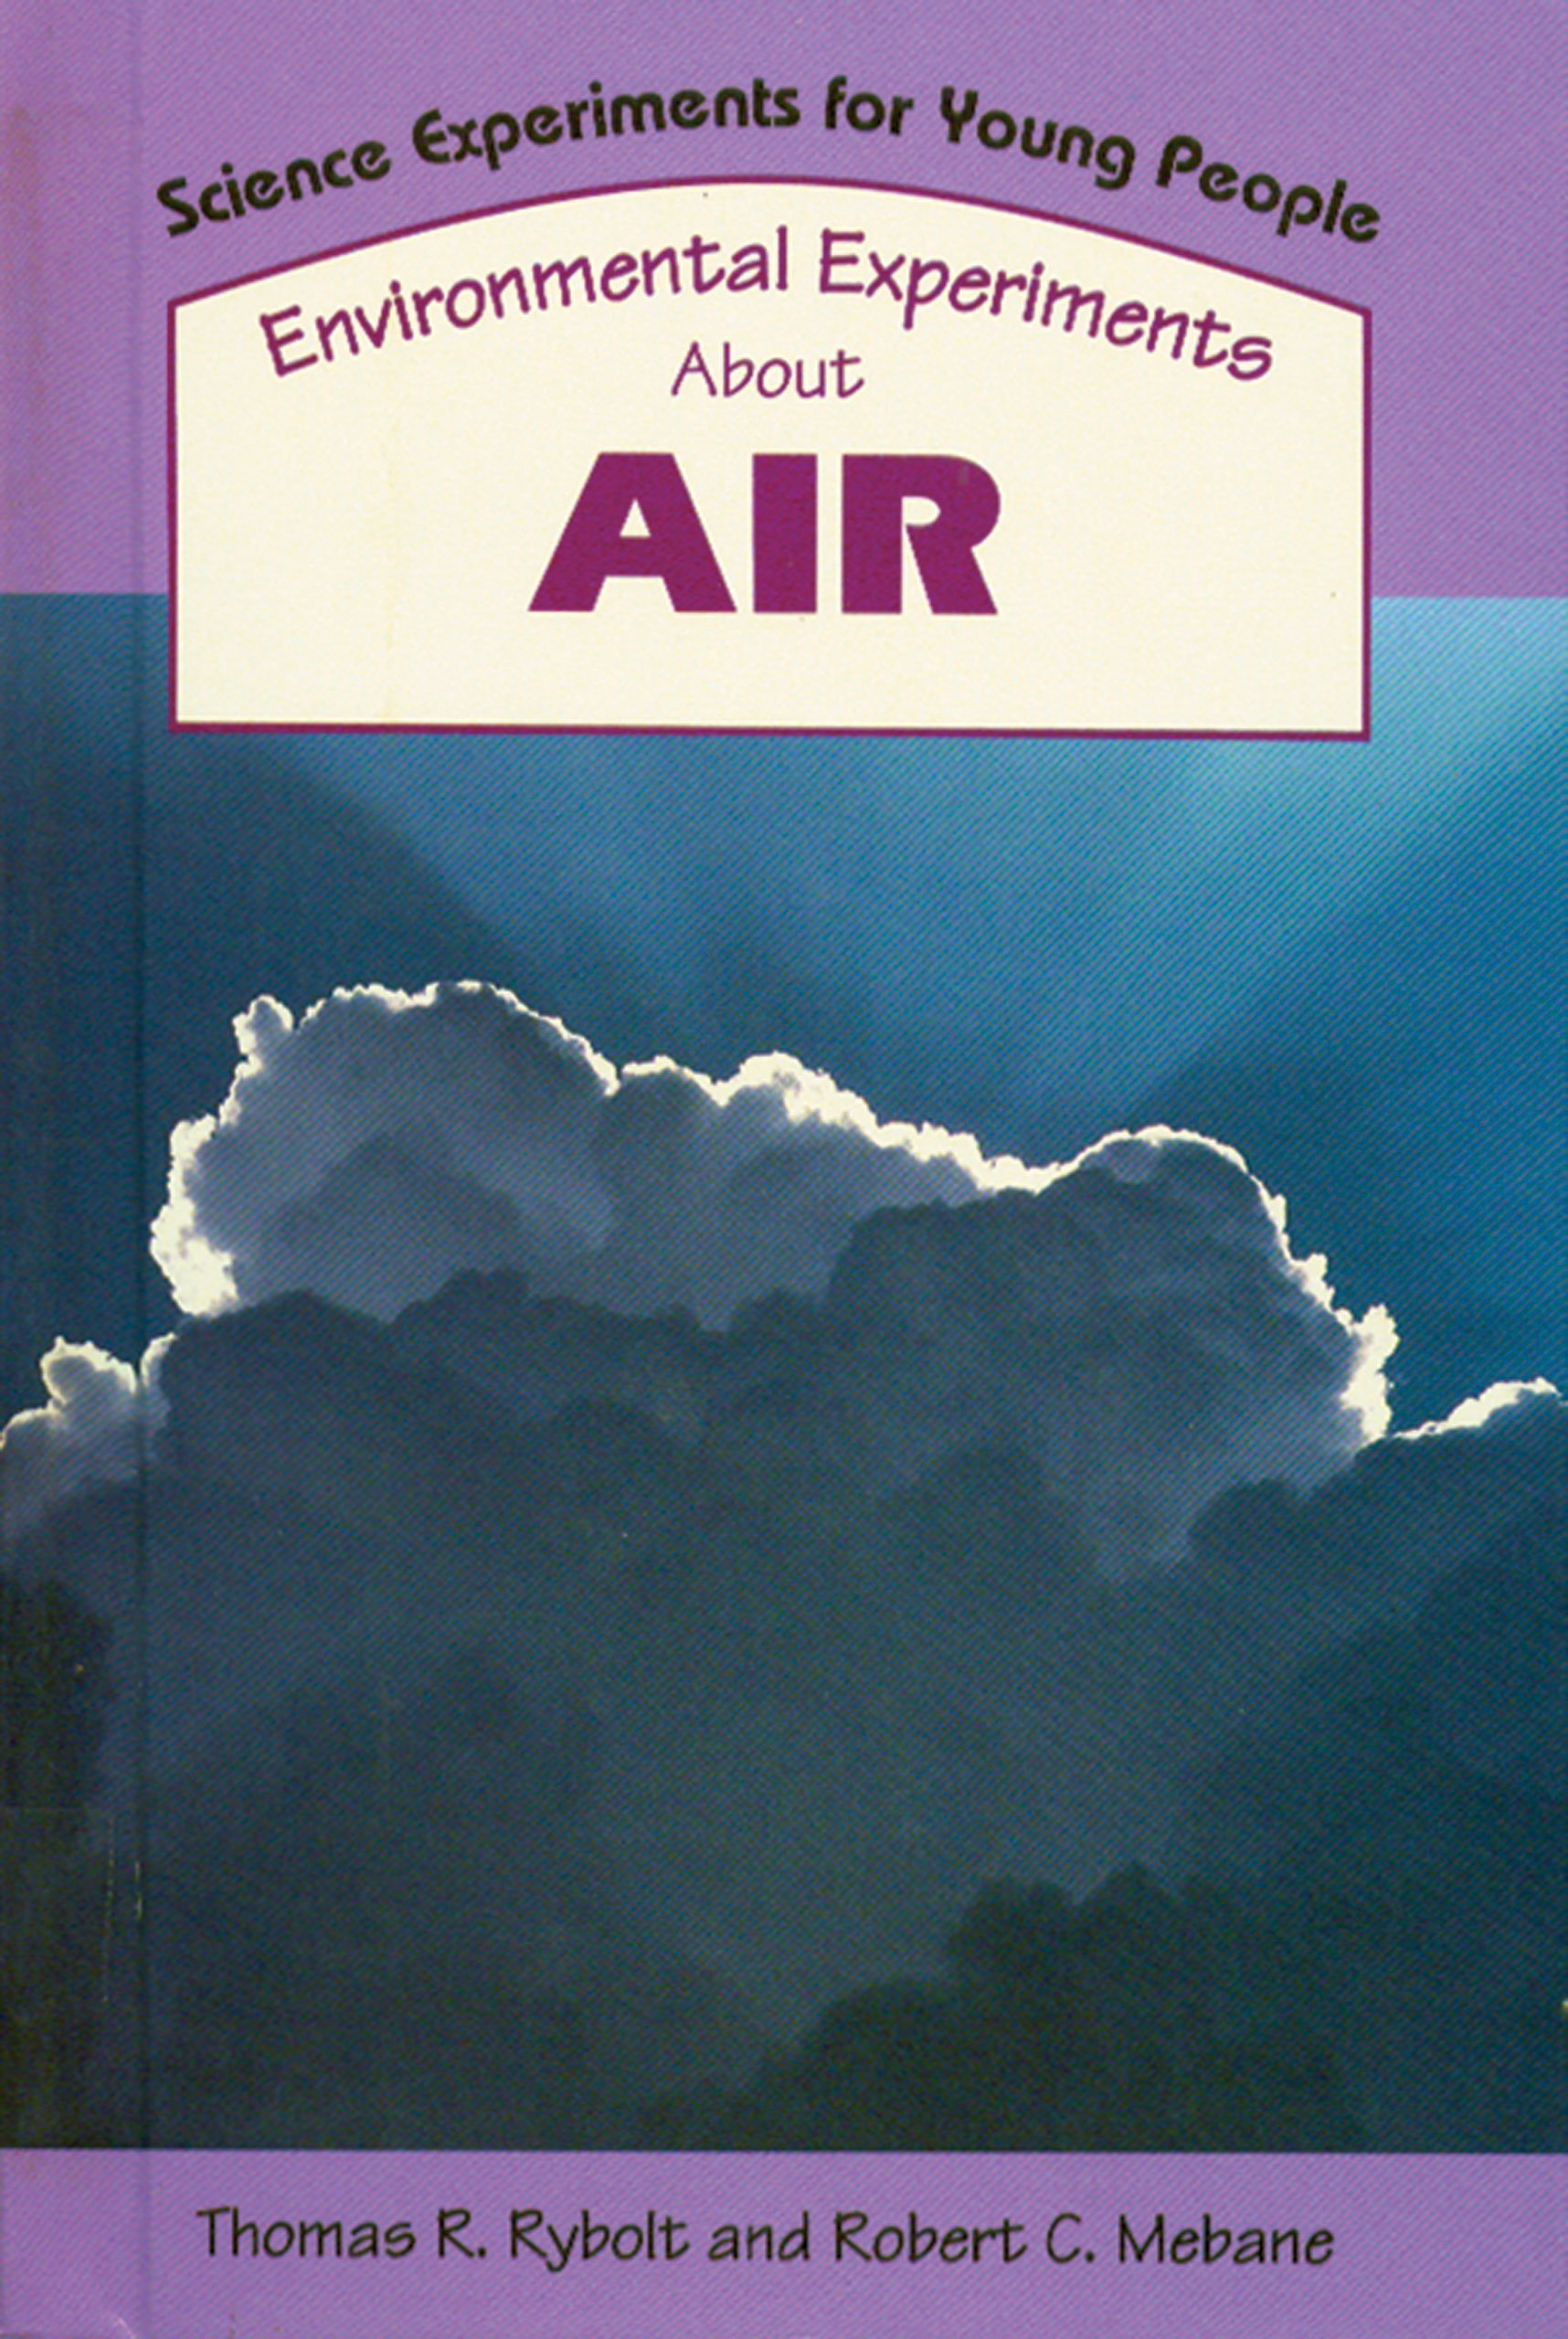 Environmental Experiments About Air (Science Experiments for Young People)